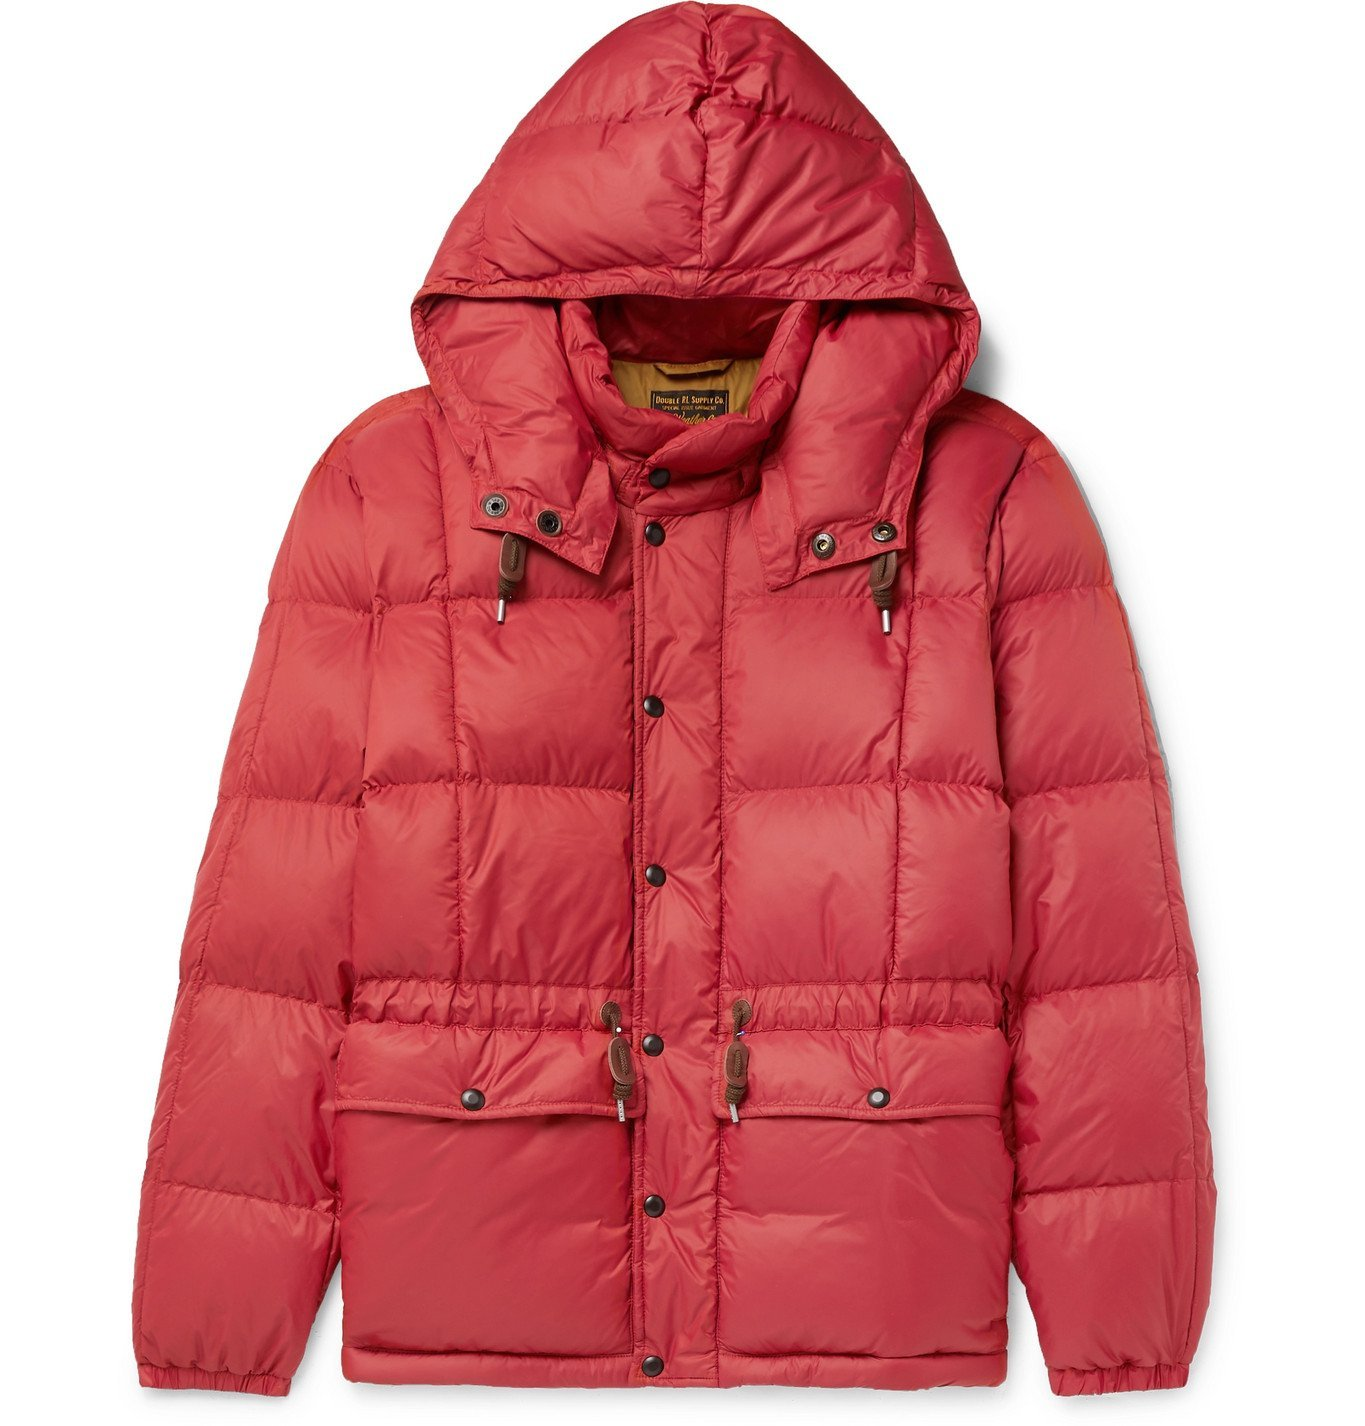 RRL - Amber Quilted Padded Nylon Hooded Jacket - Red